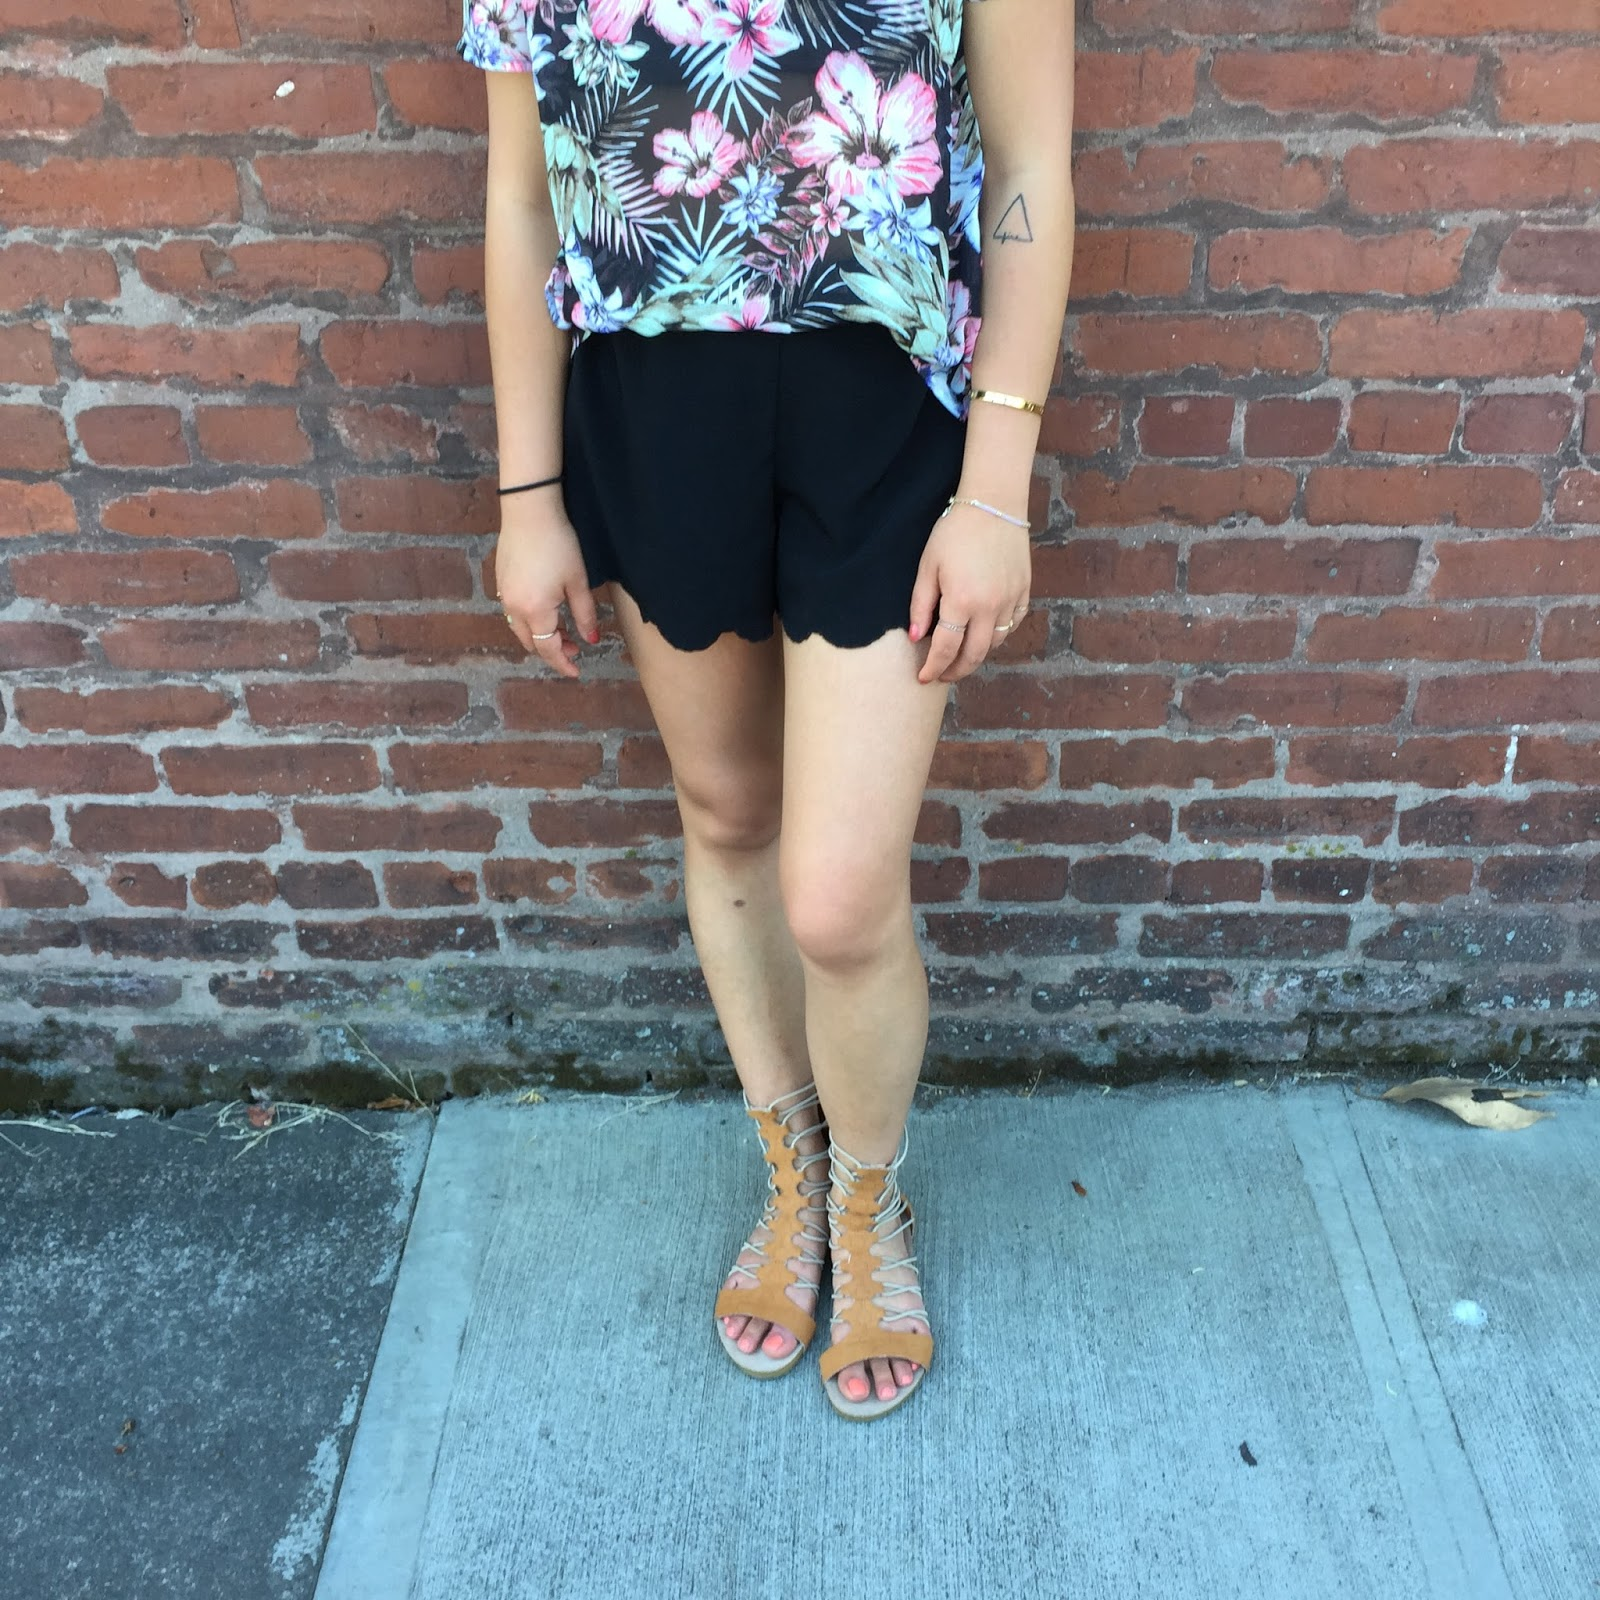 ootd, fashion blogger, portland blogger, tropical print shirt, black scalloped shorts, brown gladiator sandals, what i wore, summer outfit, thirty bucks, affordable fashion, the ptowngirls